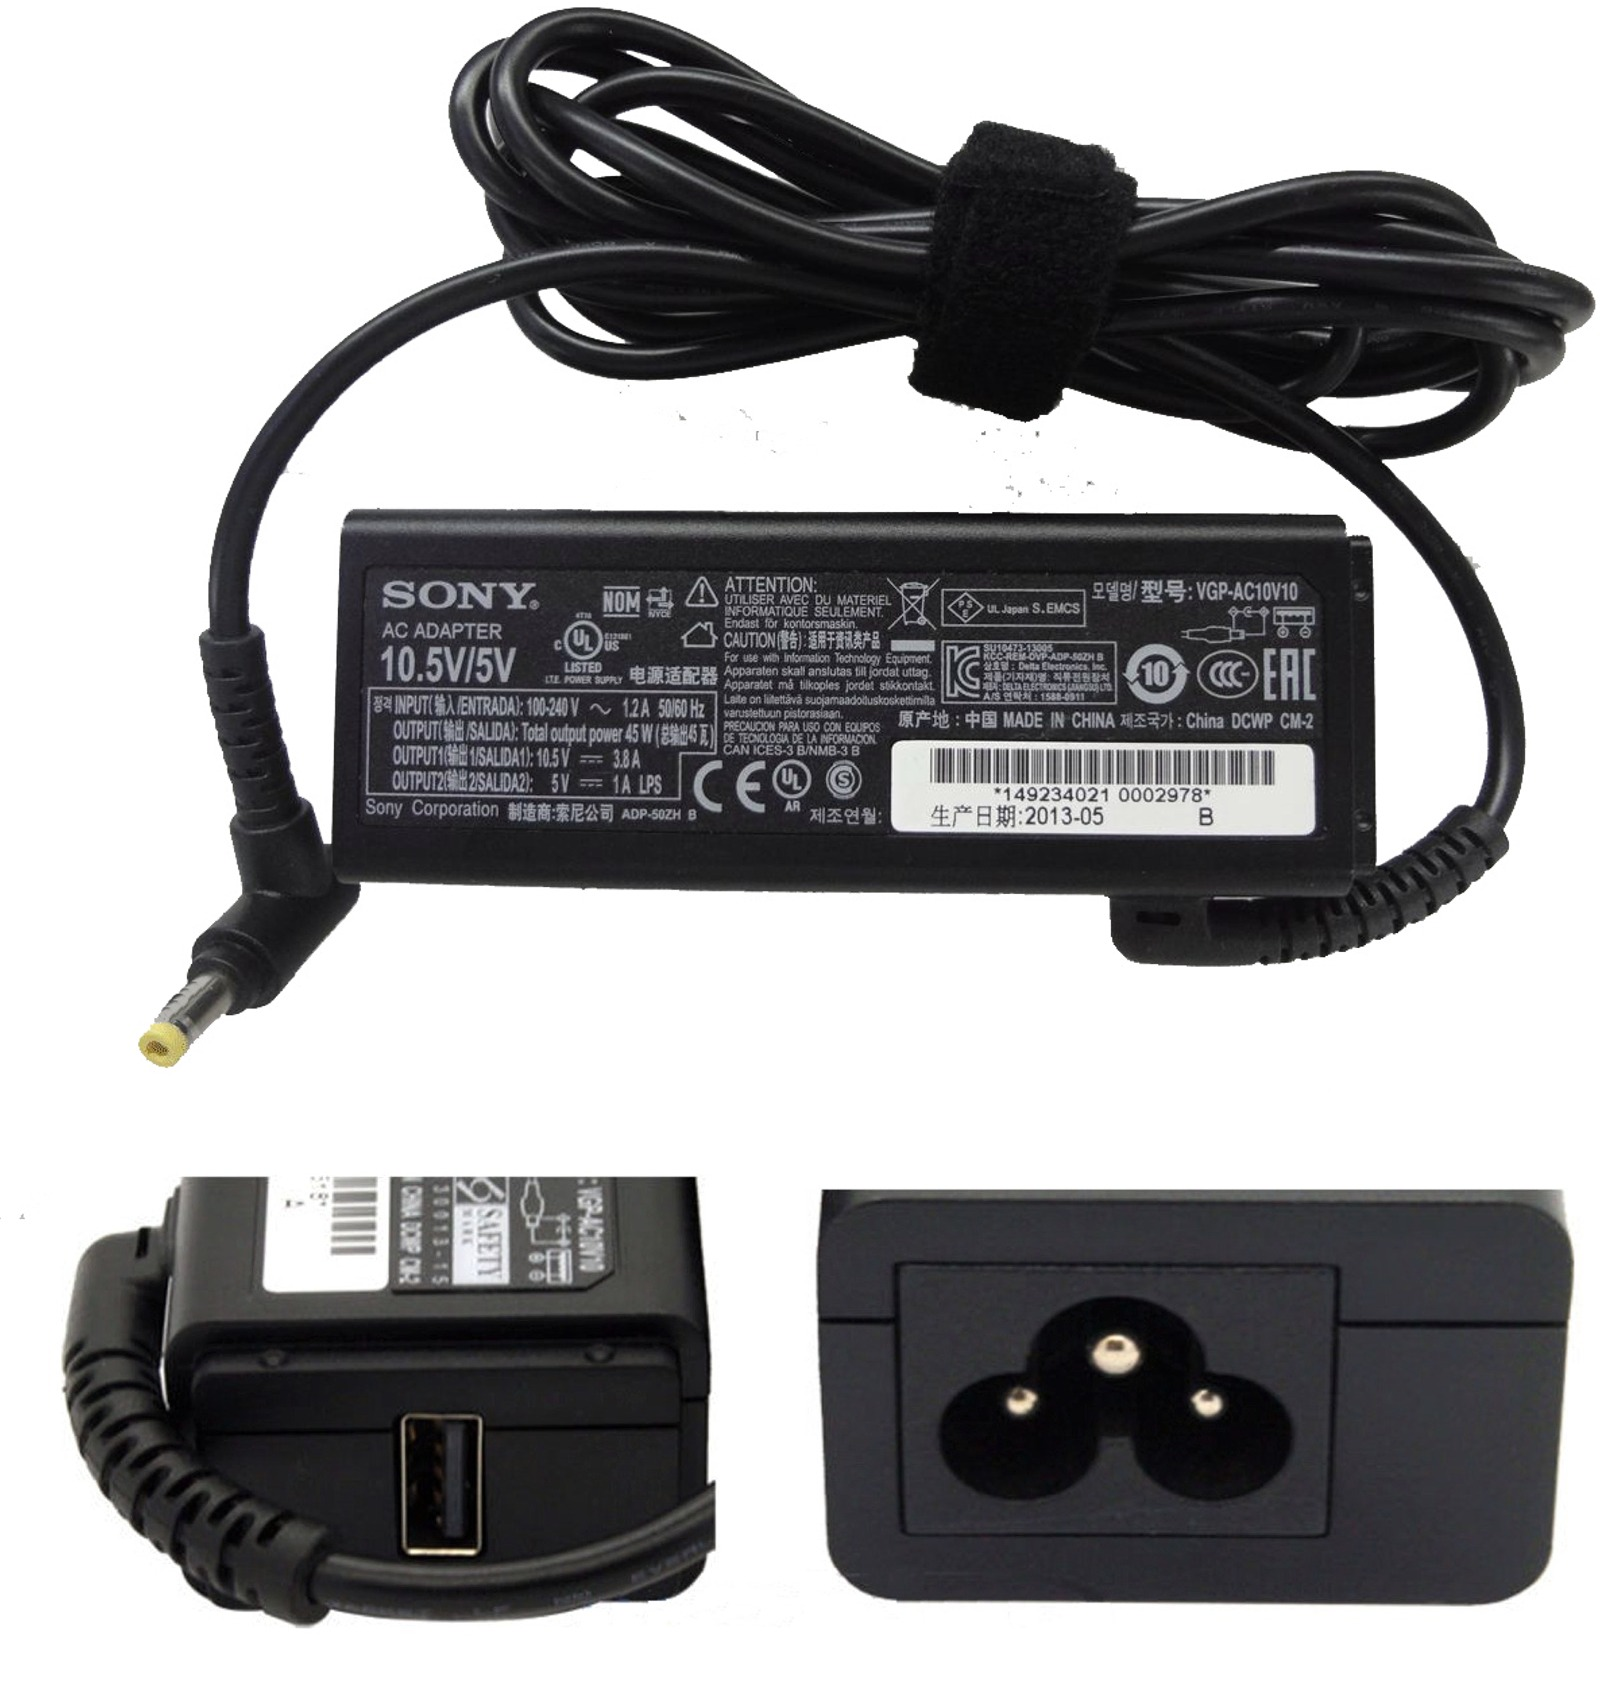 5 pin dc jack tablet netbook notebook 0 7mm 99 jeep grand cherokee laredo radio wiring diagram for sony vaio vgp ac10v8 ac10v10 10 5v 3 8a adapter